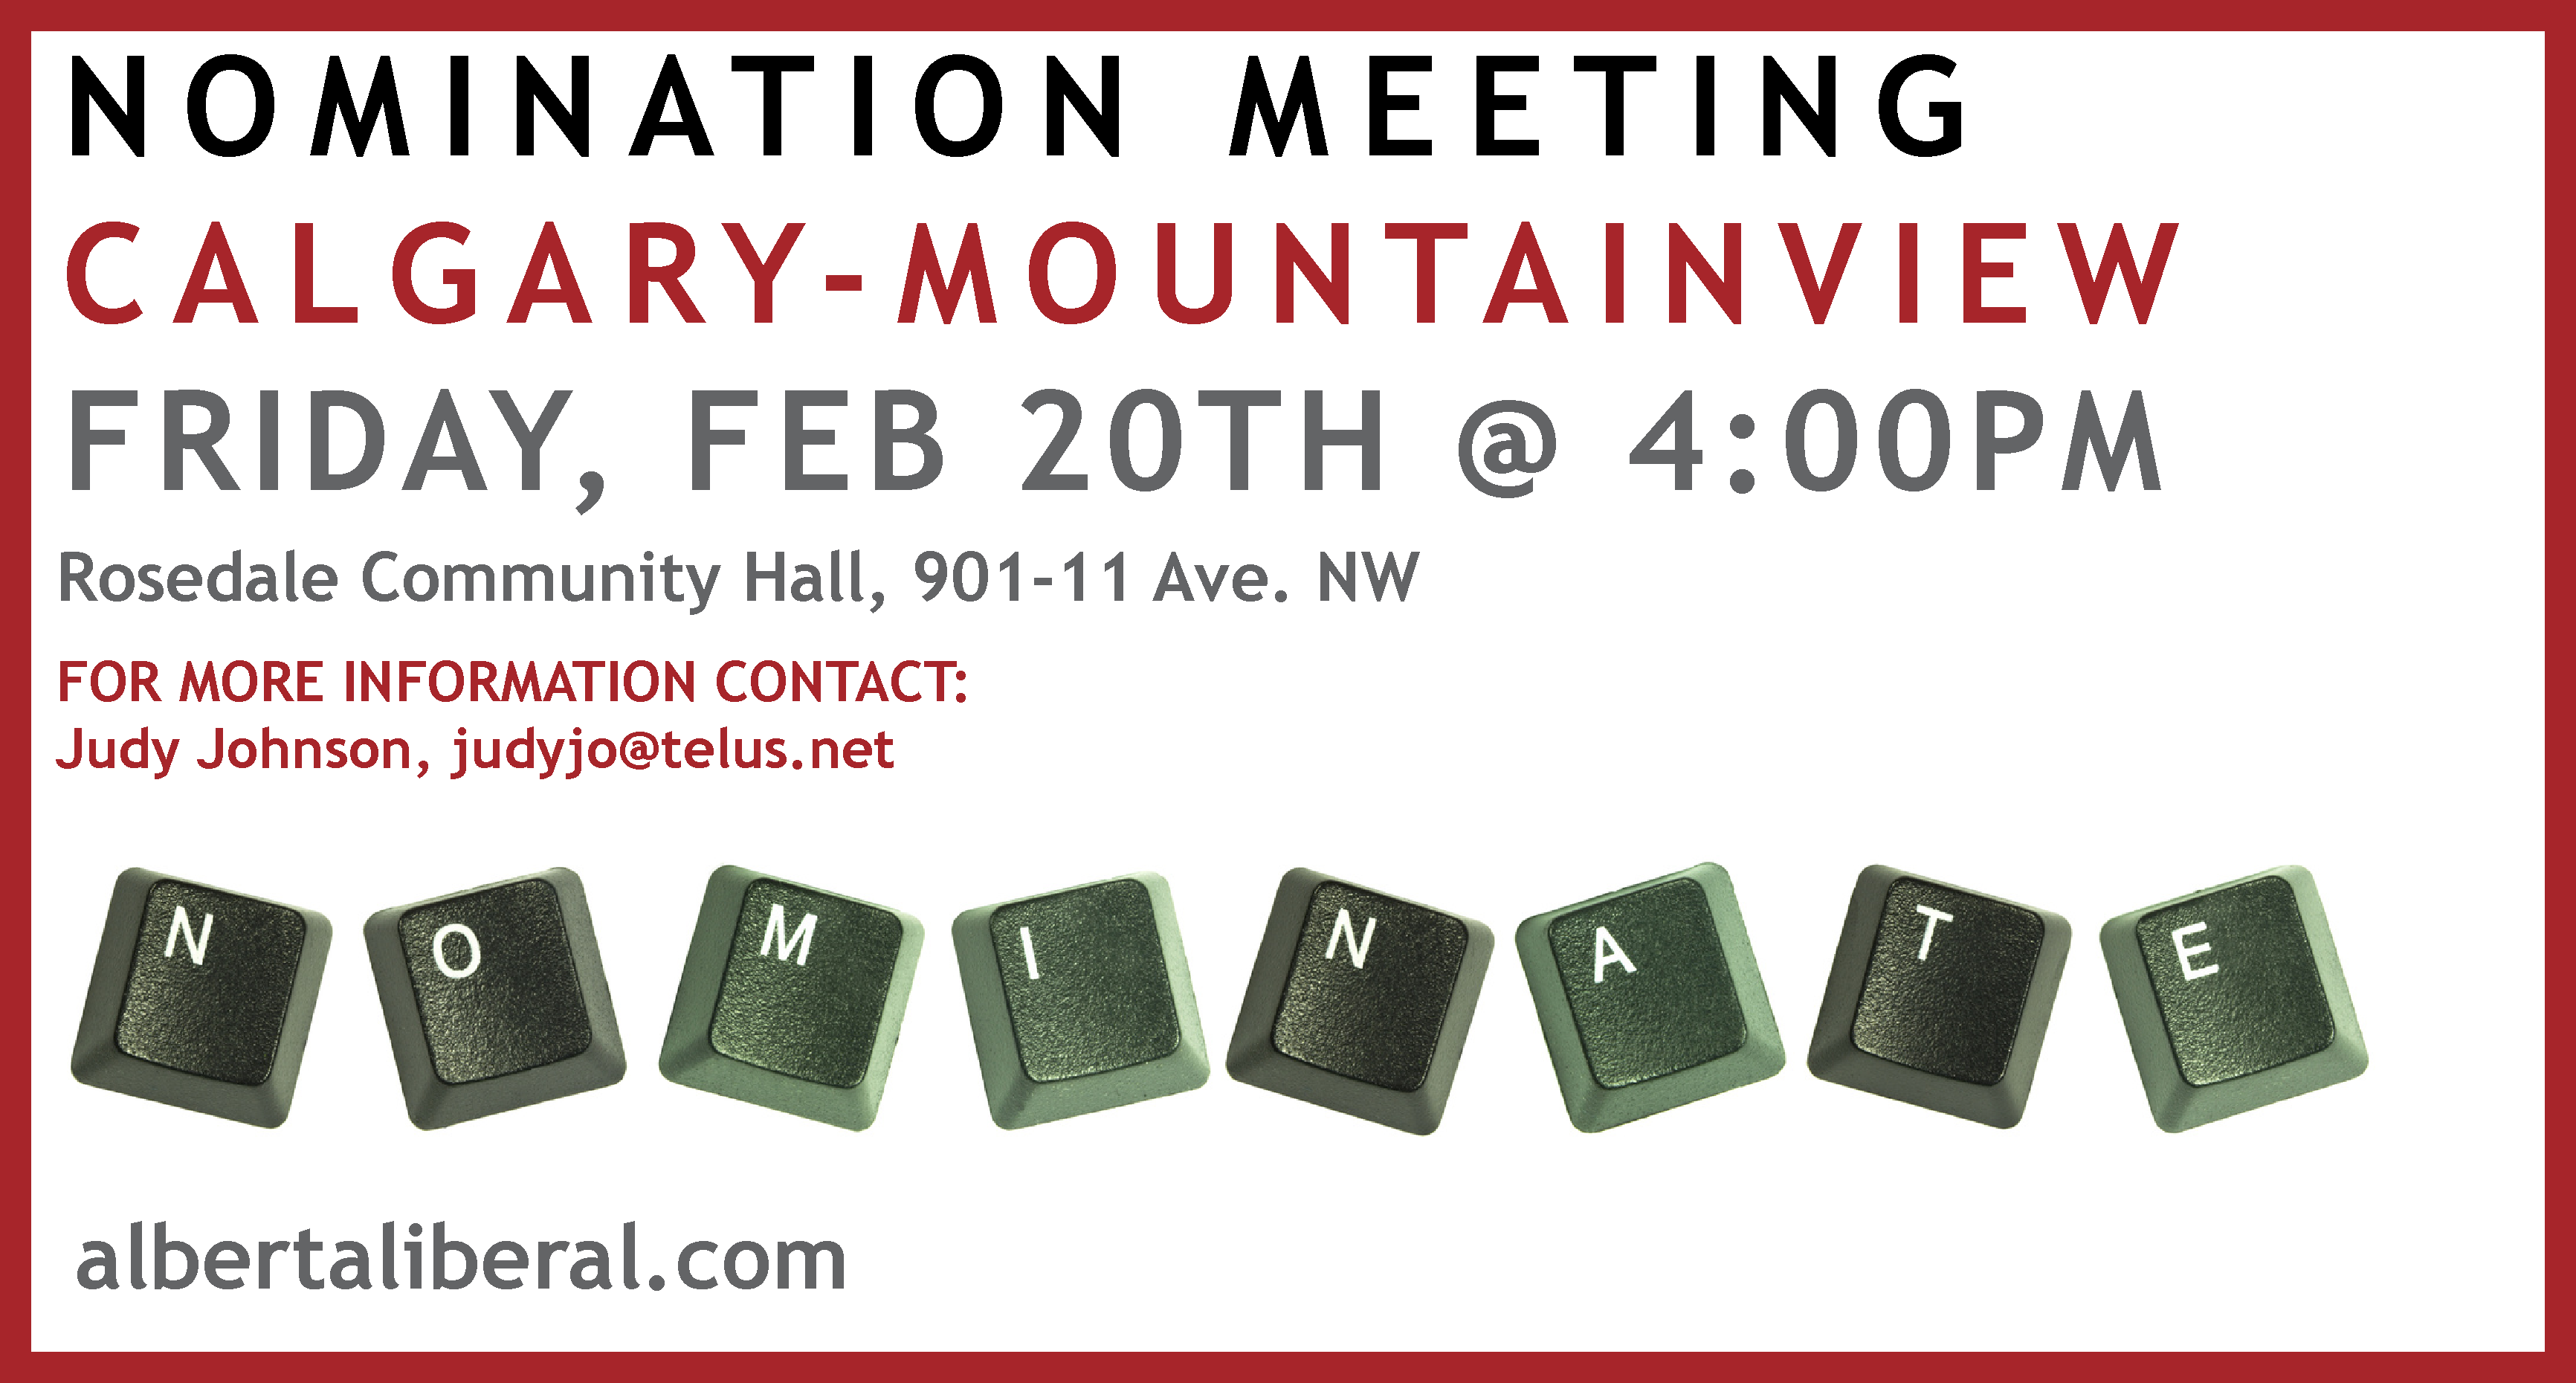 Nomination_Meeting_Mountainview.png